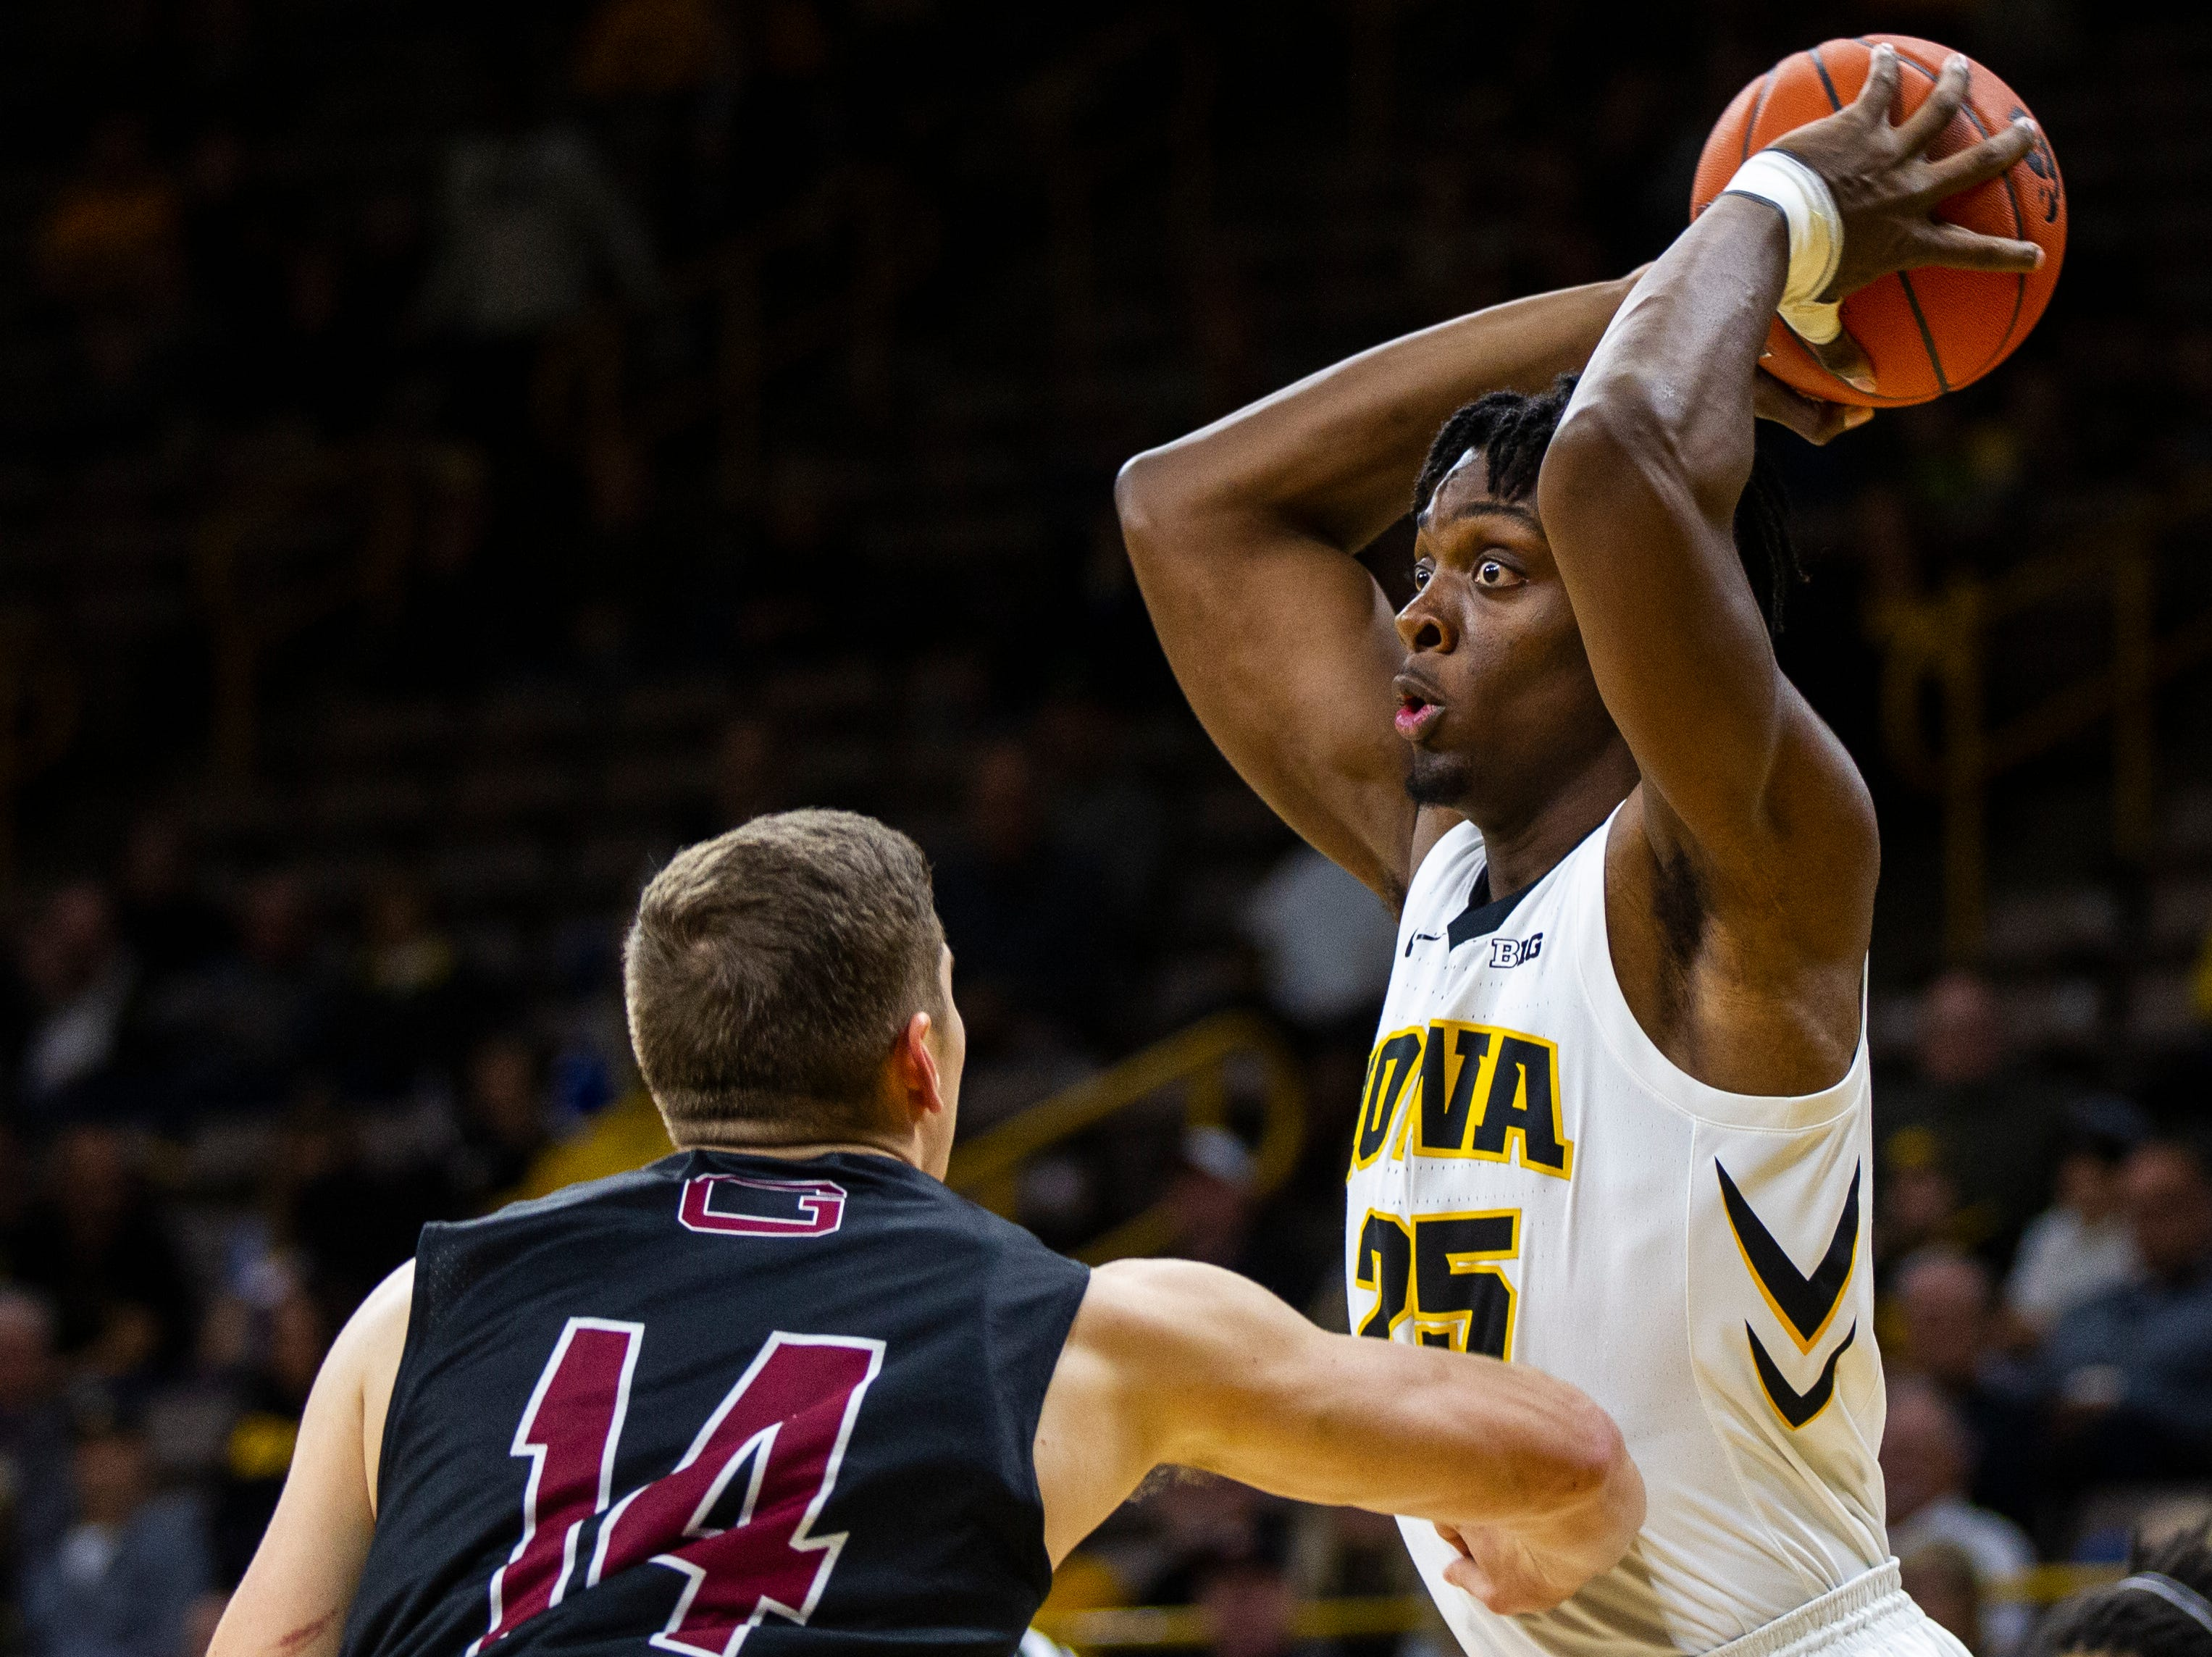 Iowa forward Tyler Cook (25) looks to shoot during men's basketball exhibition game on Sunday, Nov. 4, 2018, at Carver-Hawkeye Arena in Iowa City.